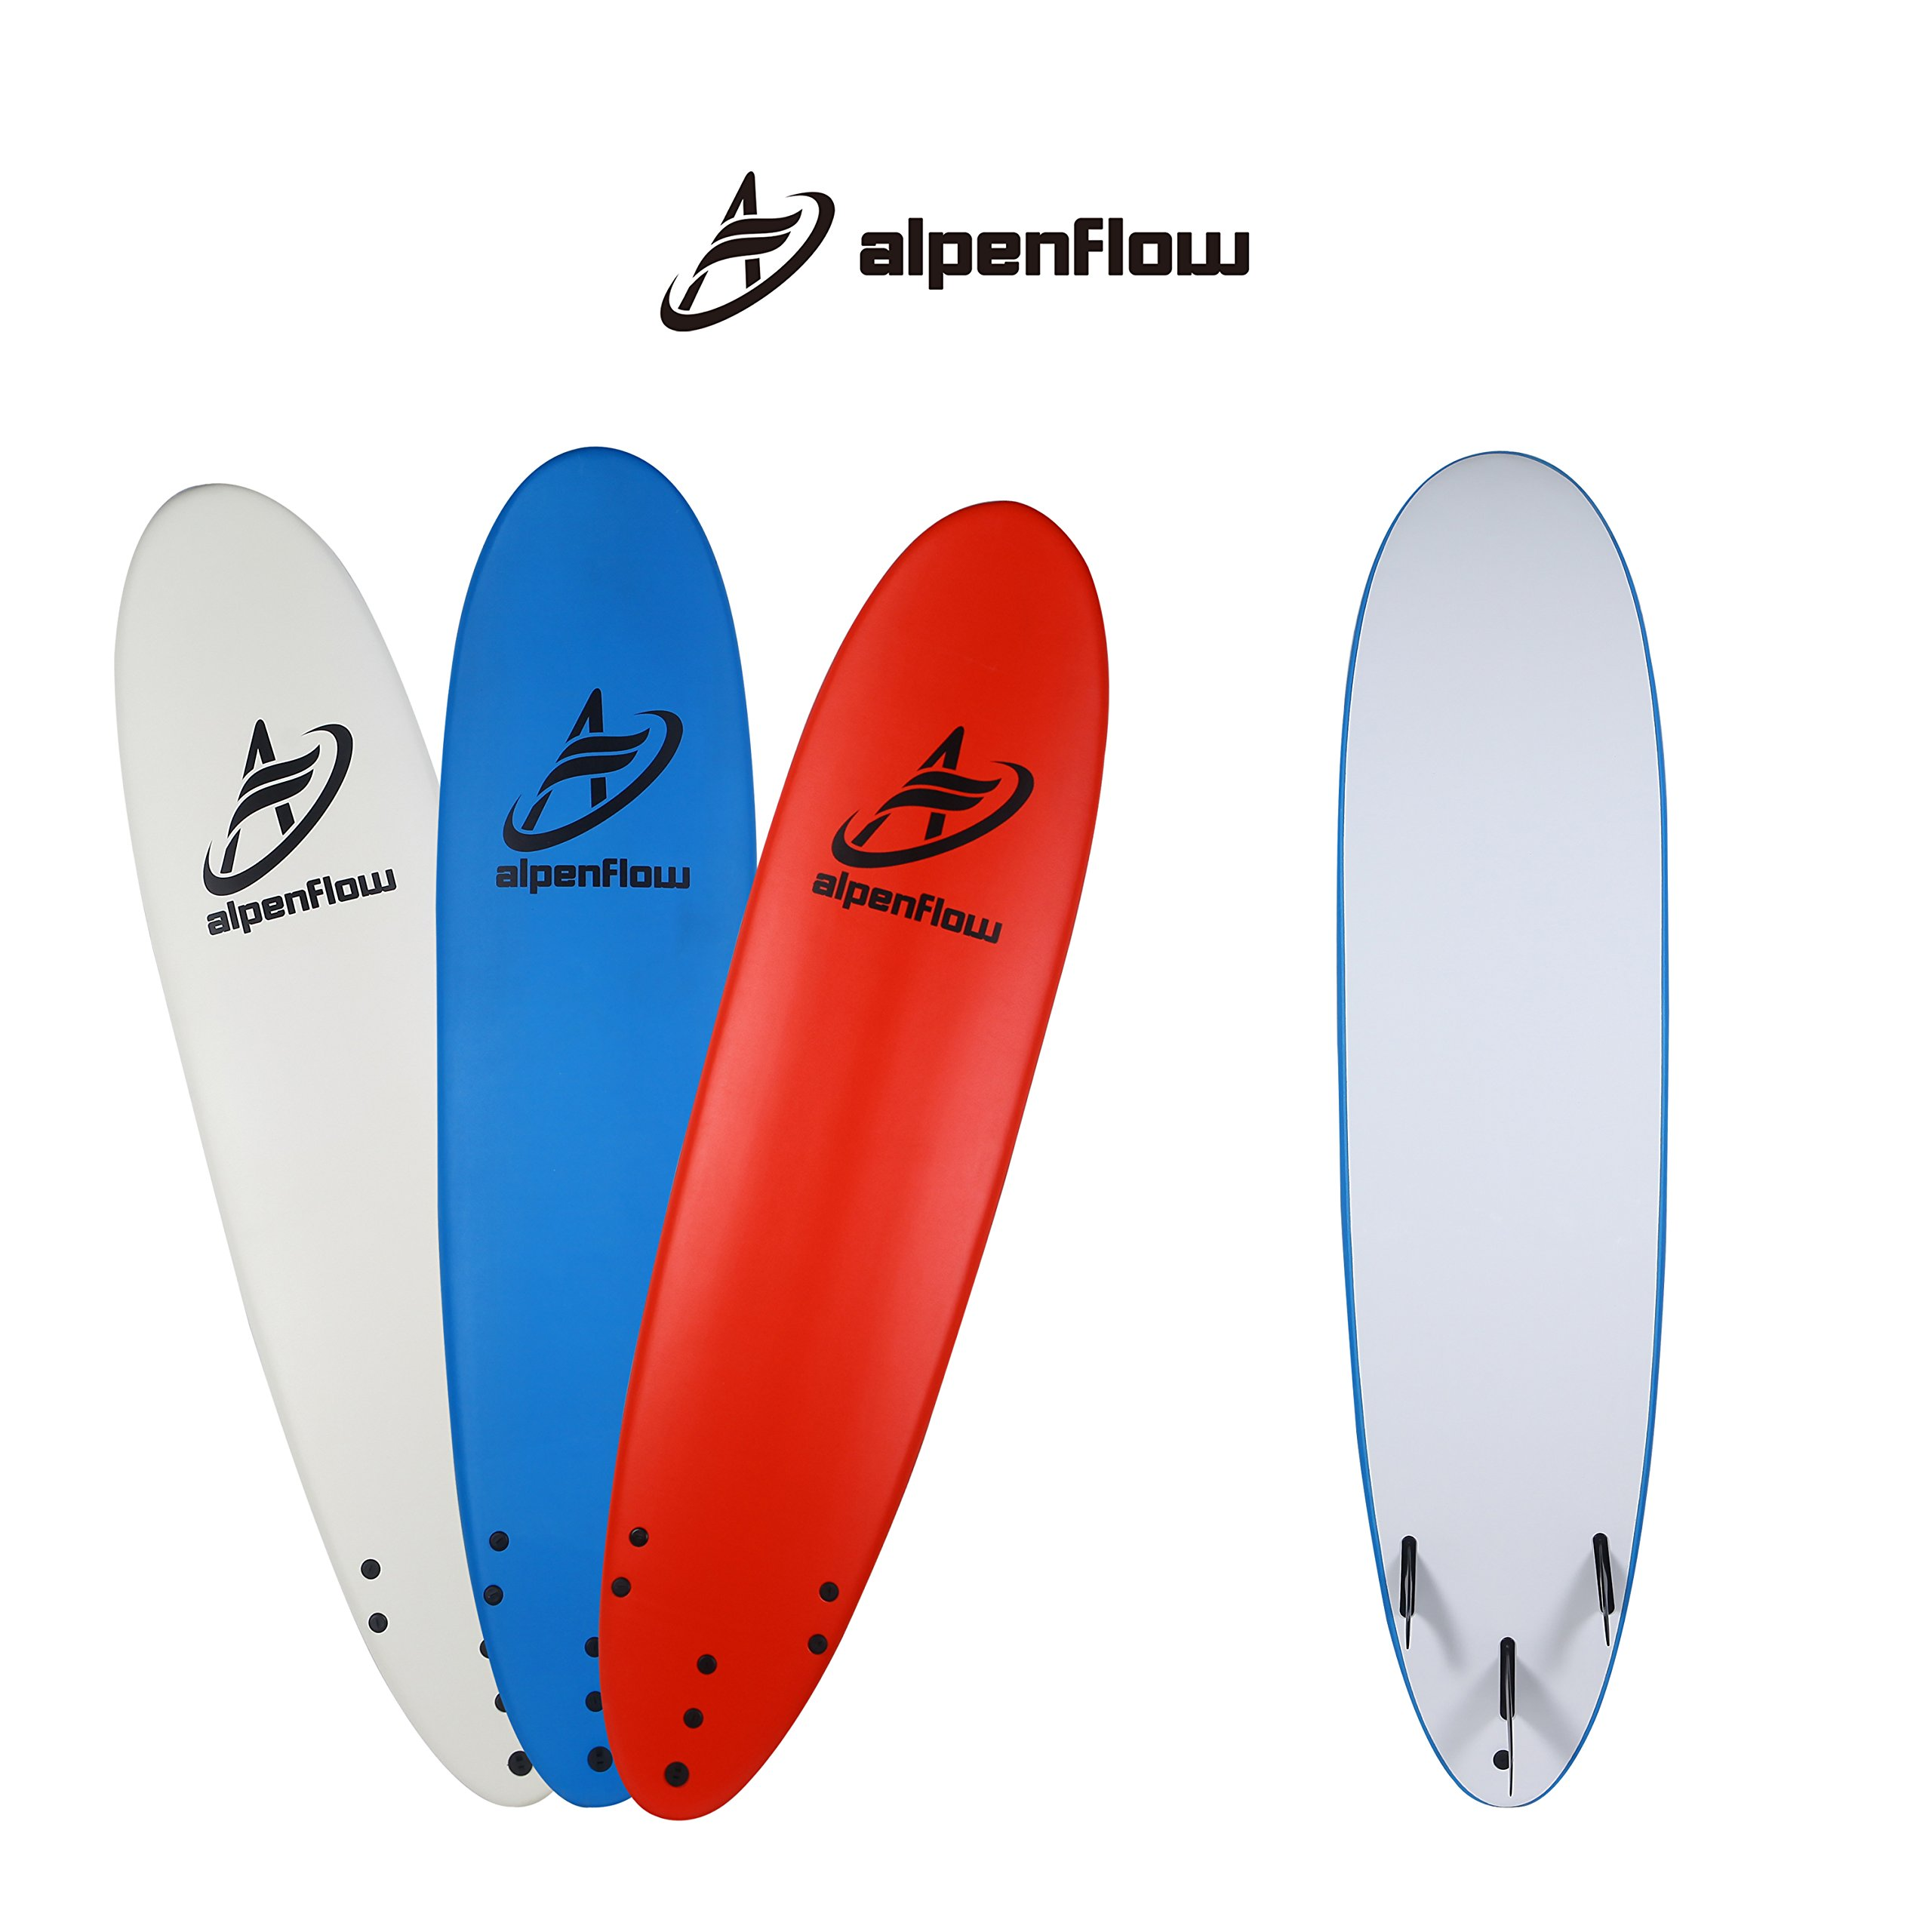 A ALPENFLOW 8' Soft Top Surfboard Foamie Surf Boards Surfing Board with Leash and Removable Fins, Blue